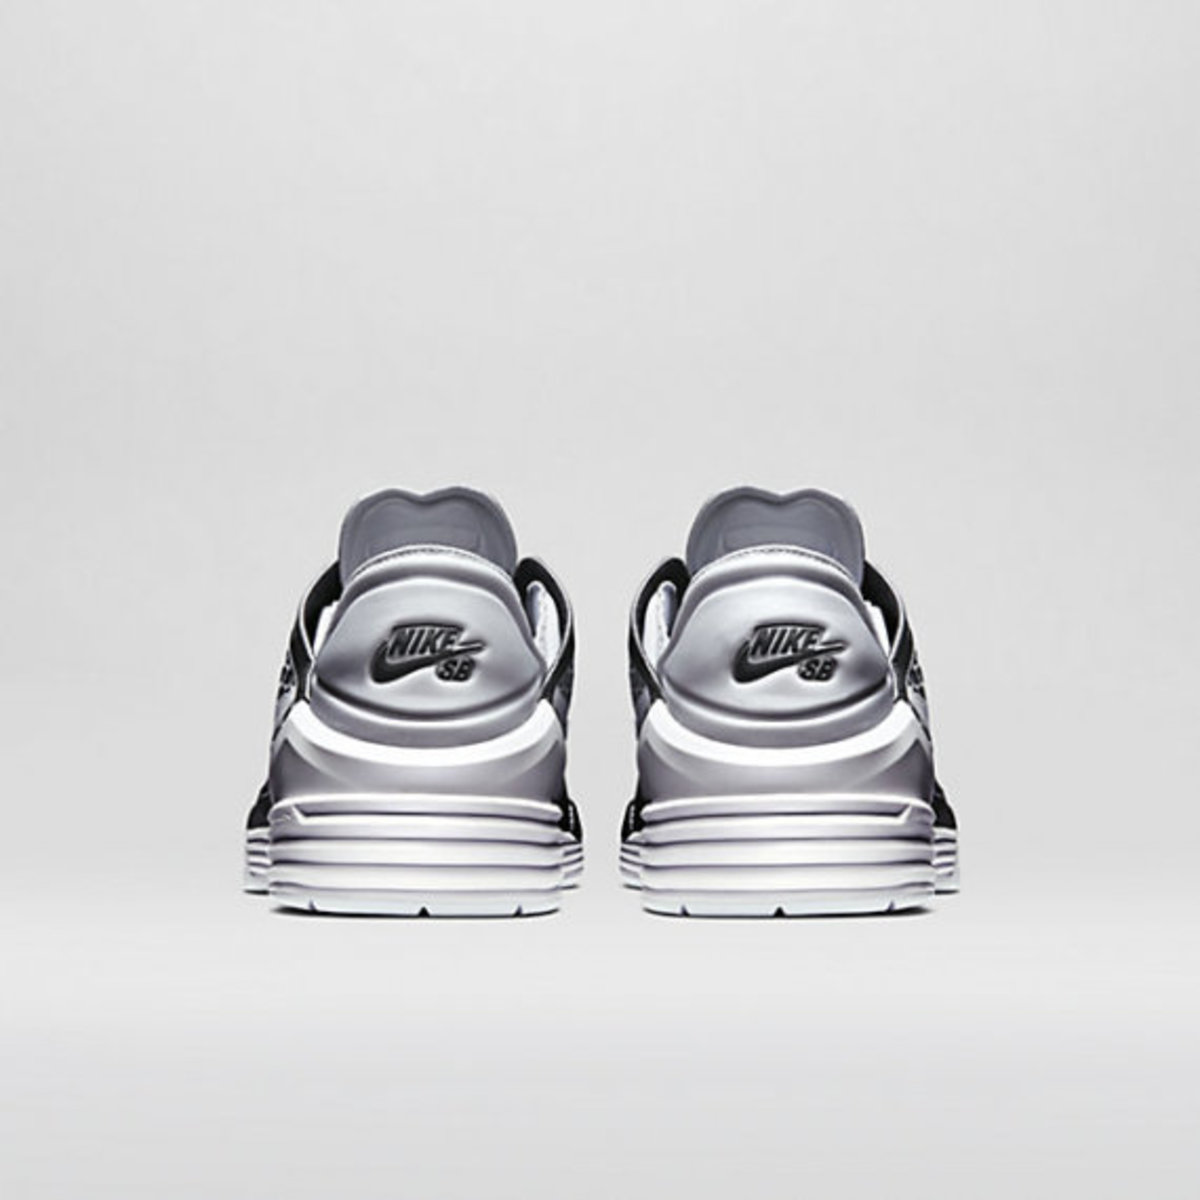 nike-sb-paul-rod-8-anthracite-04